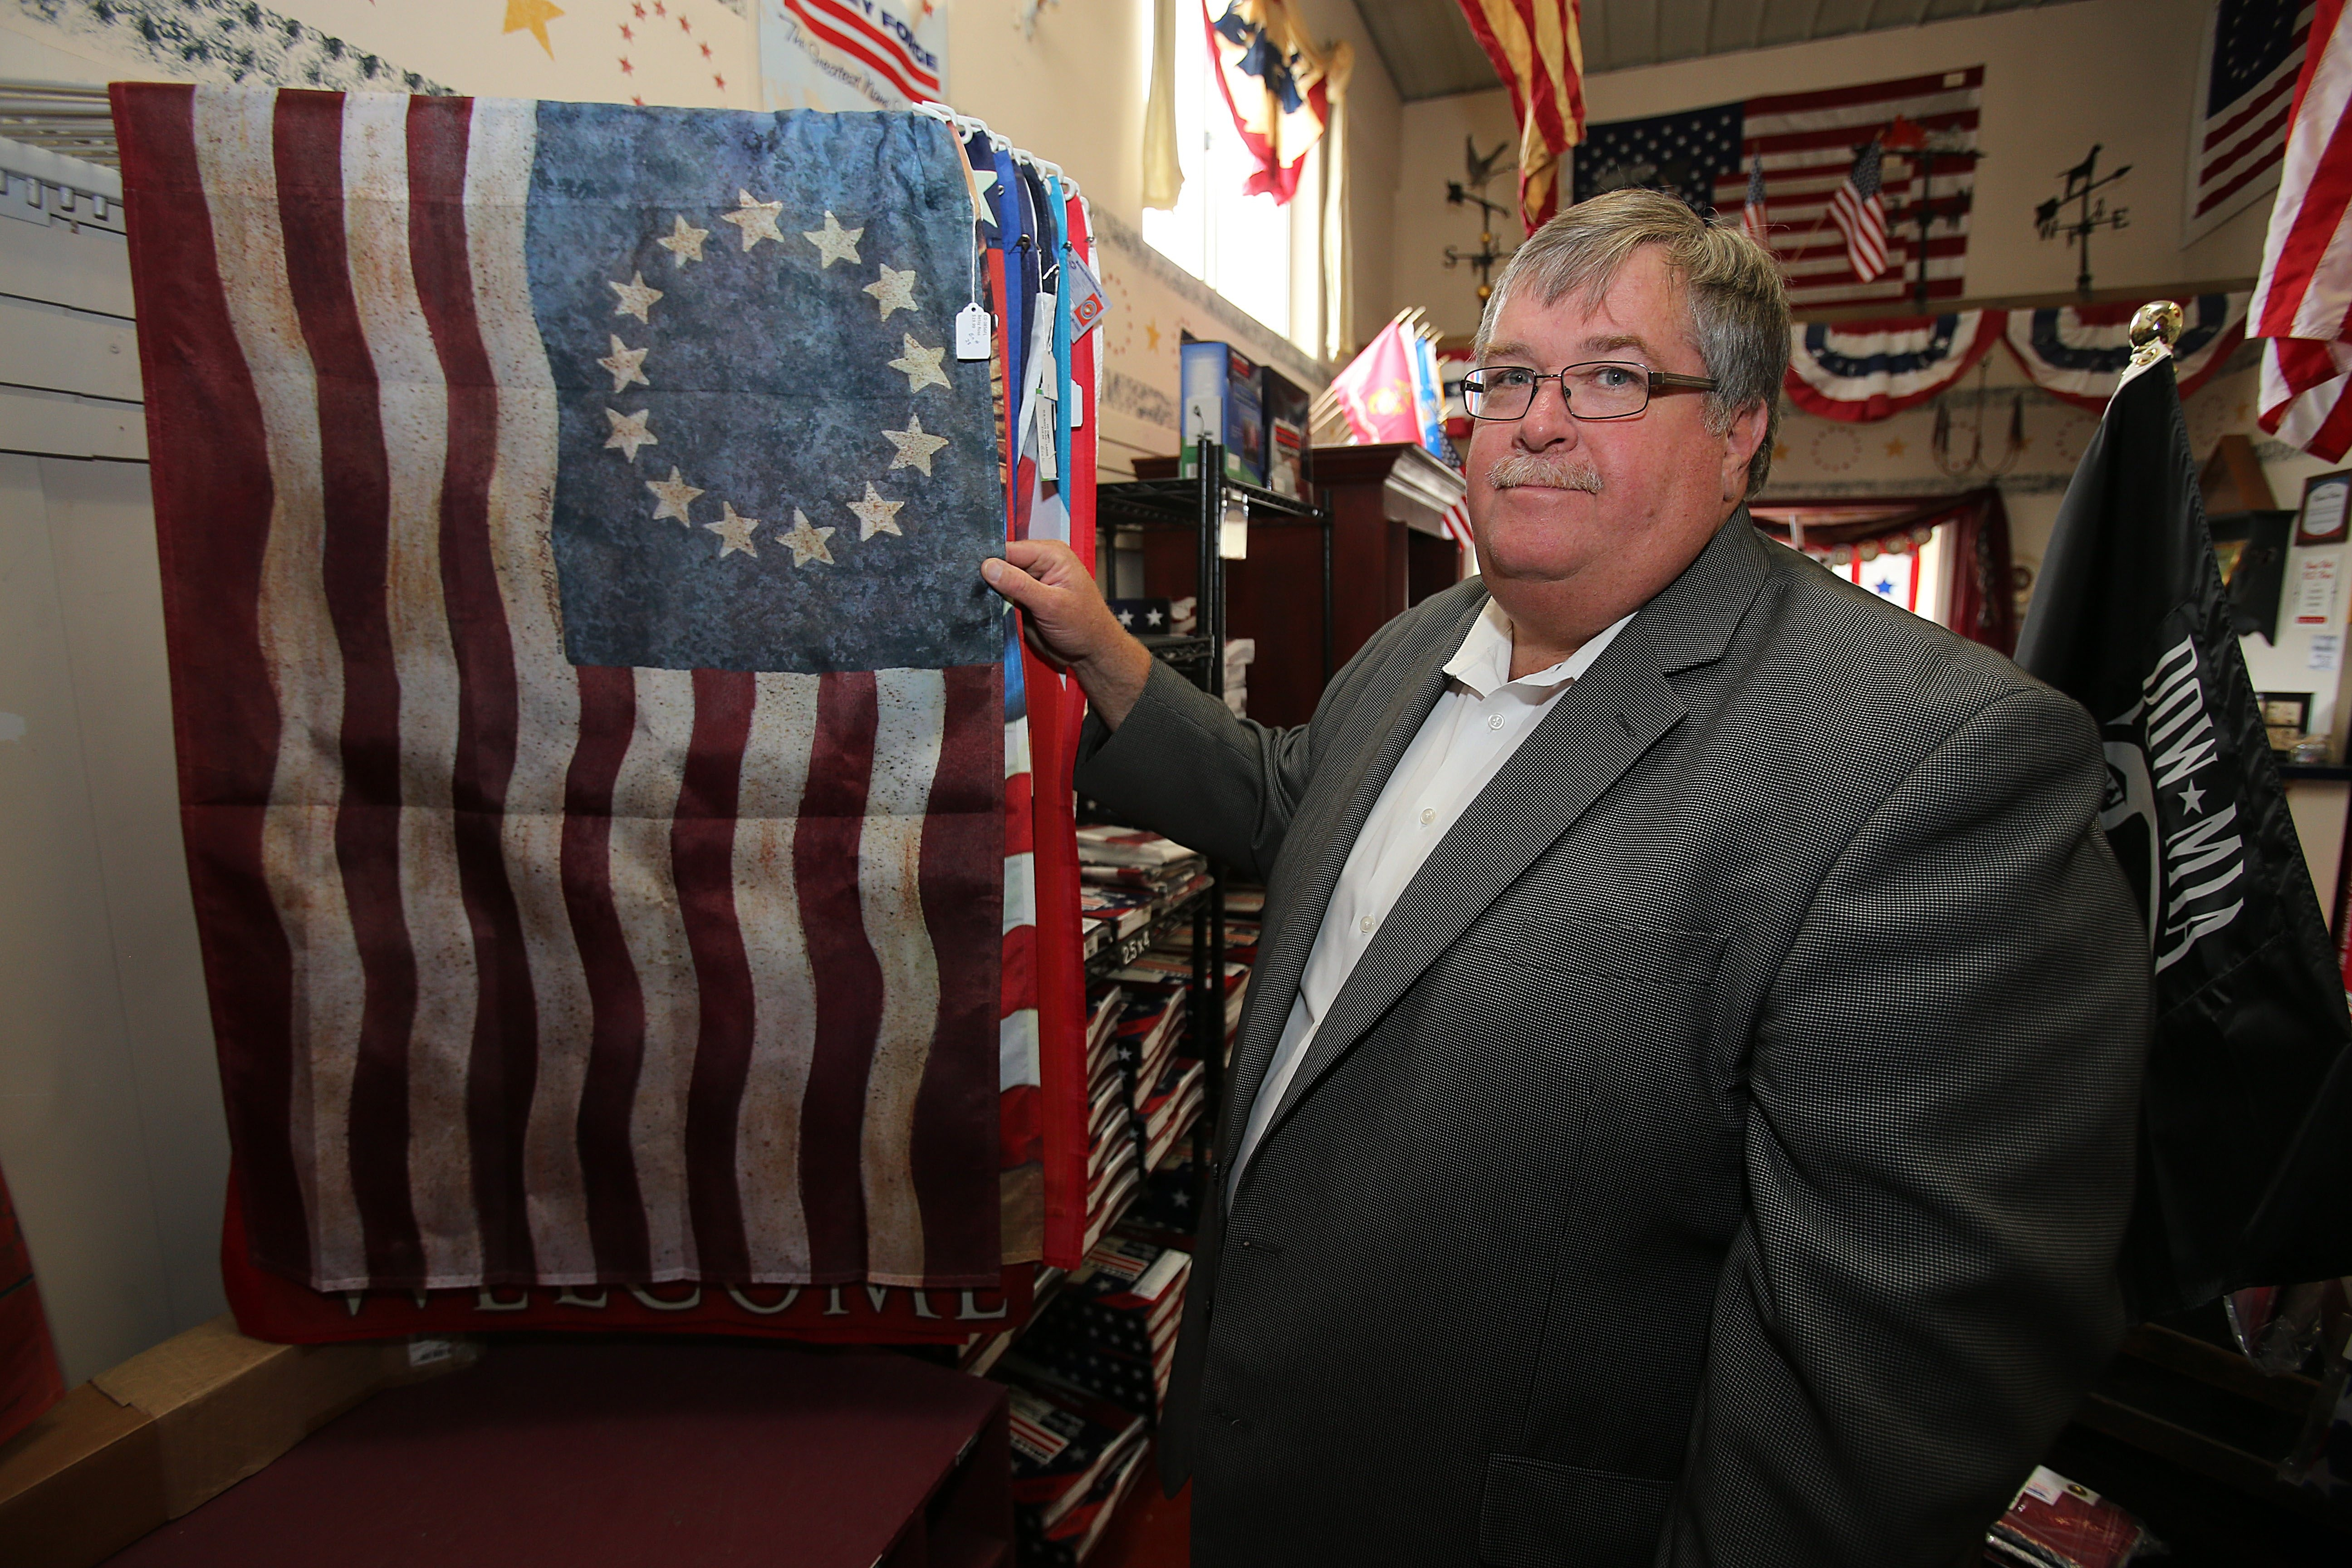 John Cooper Sr., owner of Cooper Sign Co. and Old Glory Flags, poses with a period flag at his company's Niagara Falls offices.